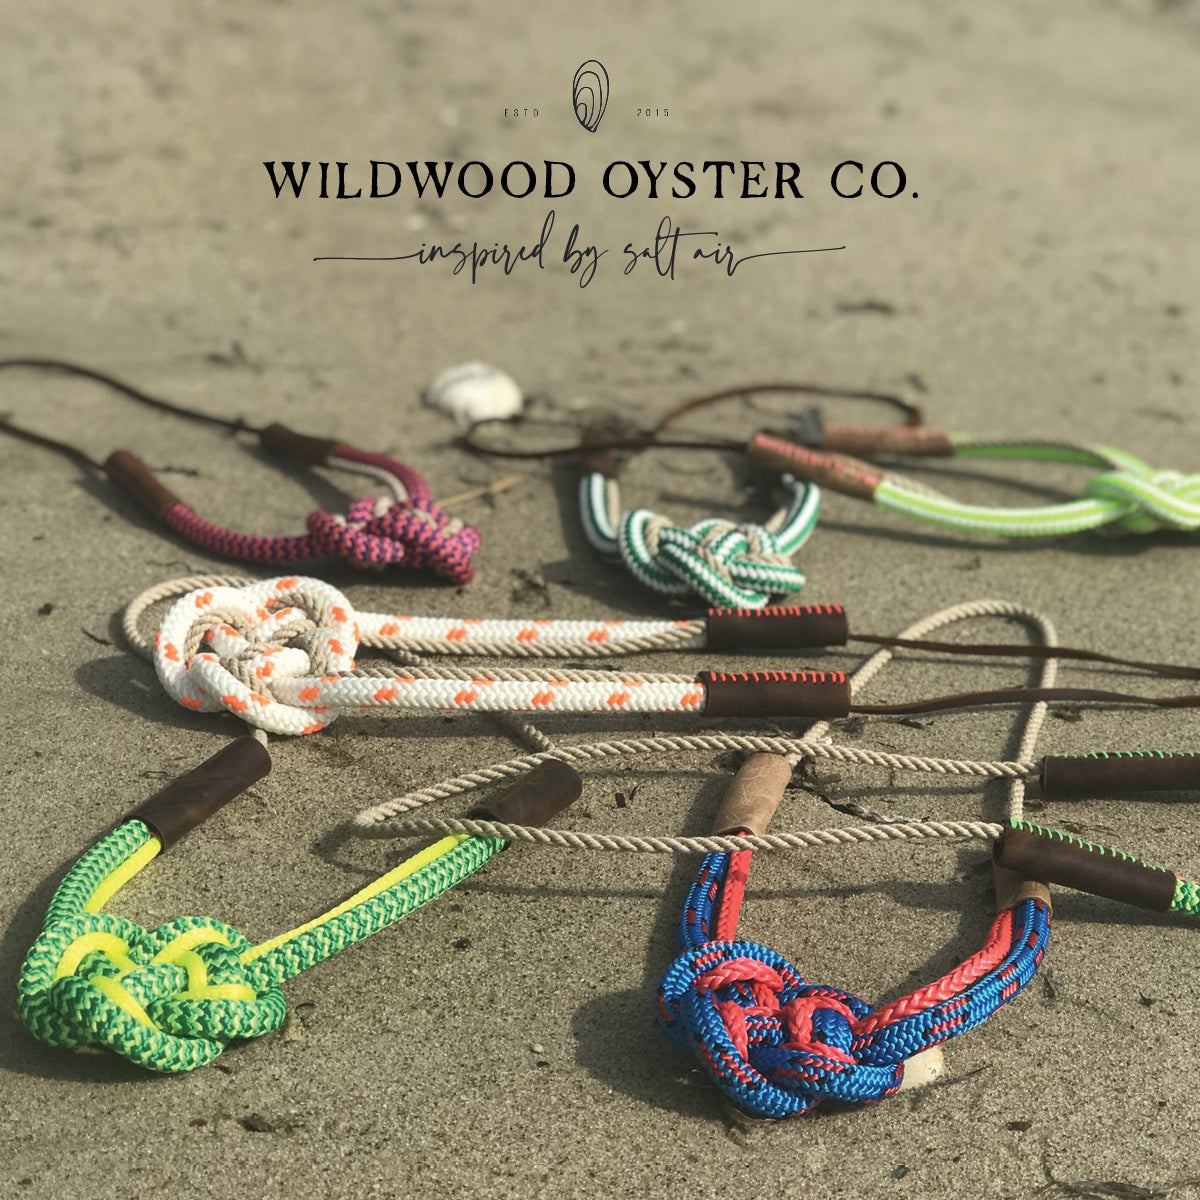 Wildwood Oyster Co.